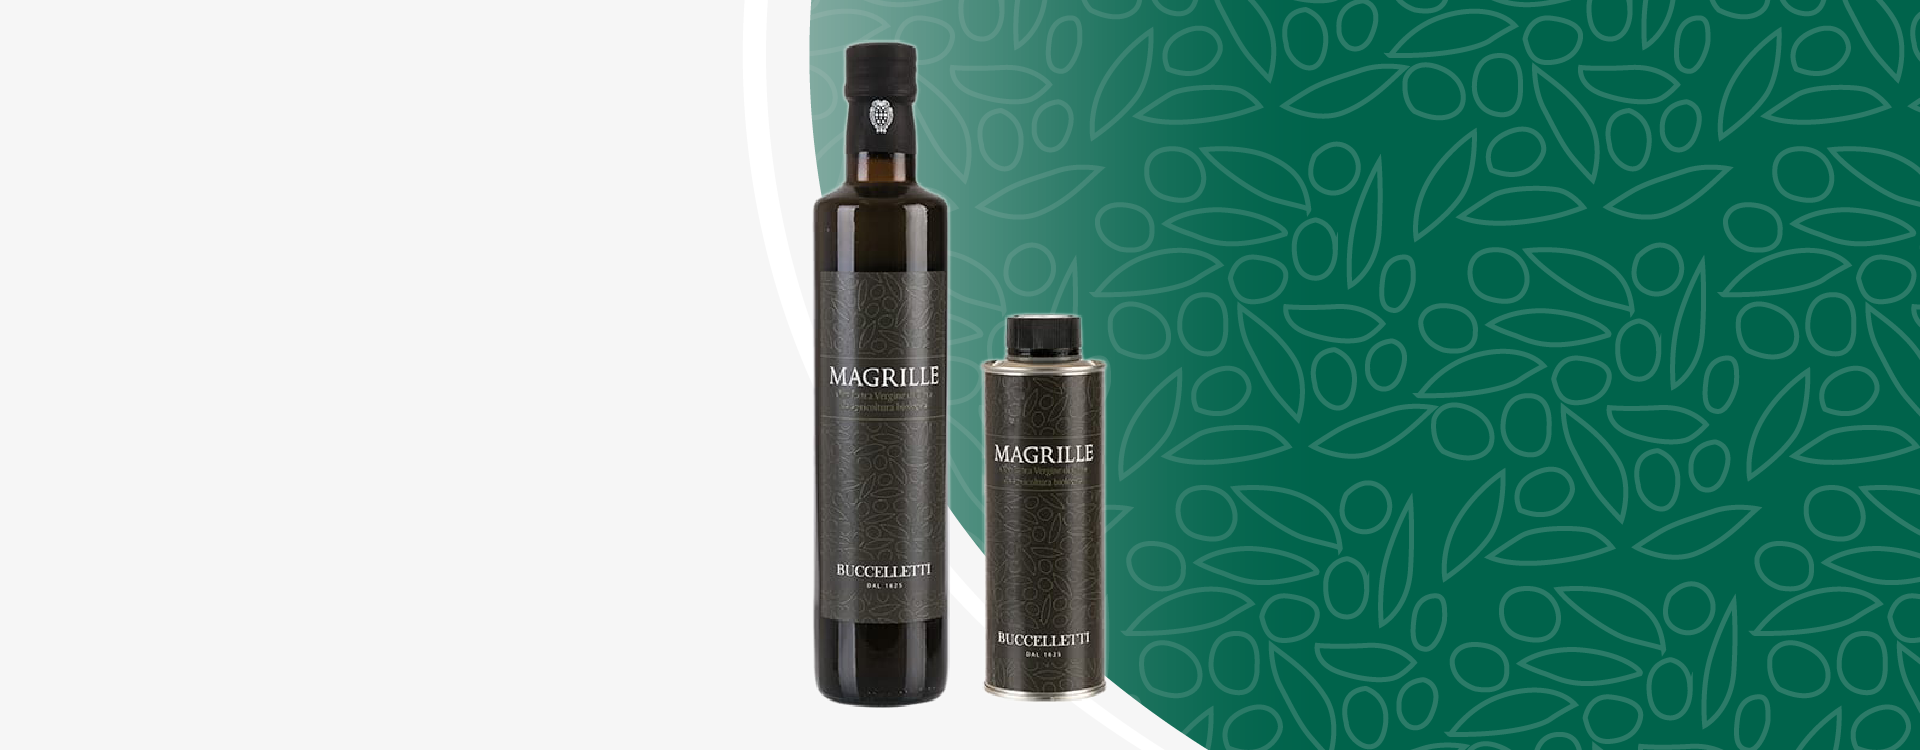 Super high density olive farming: Magrille oil has won the Magnifico 2019 prize